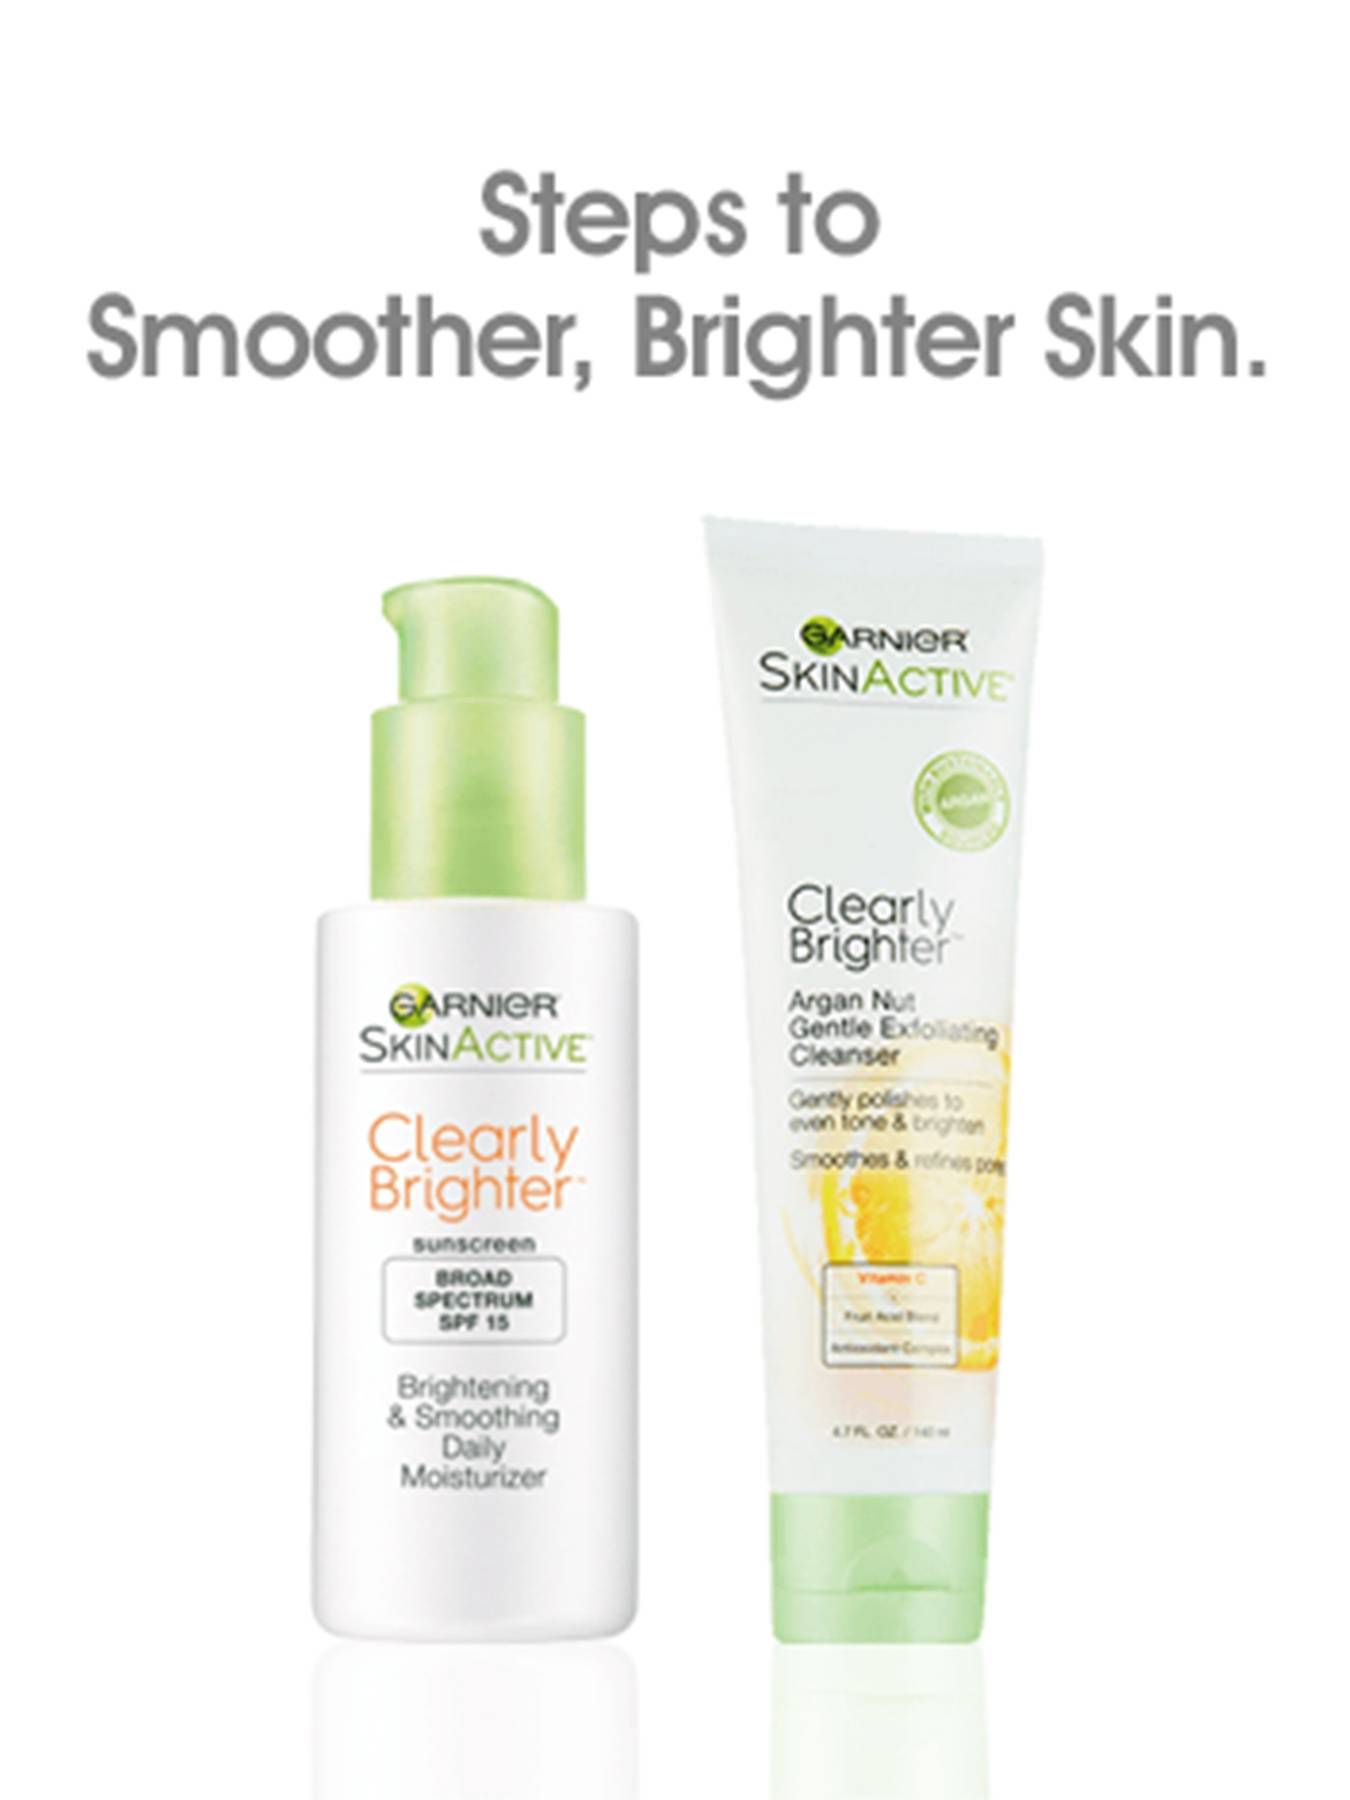 Garnier SkinActive Clearly Brighter Argan Nut Gentle Exfoliating Cleanser - Skin Care  Product for smoother, more radiant skin - protects with spf 15